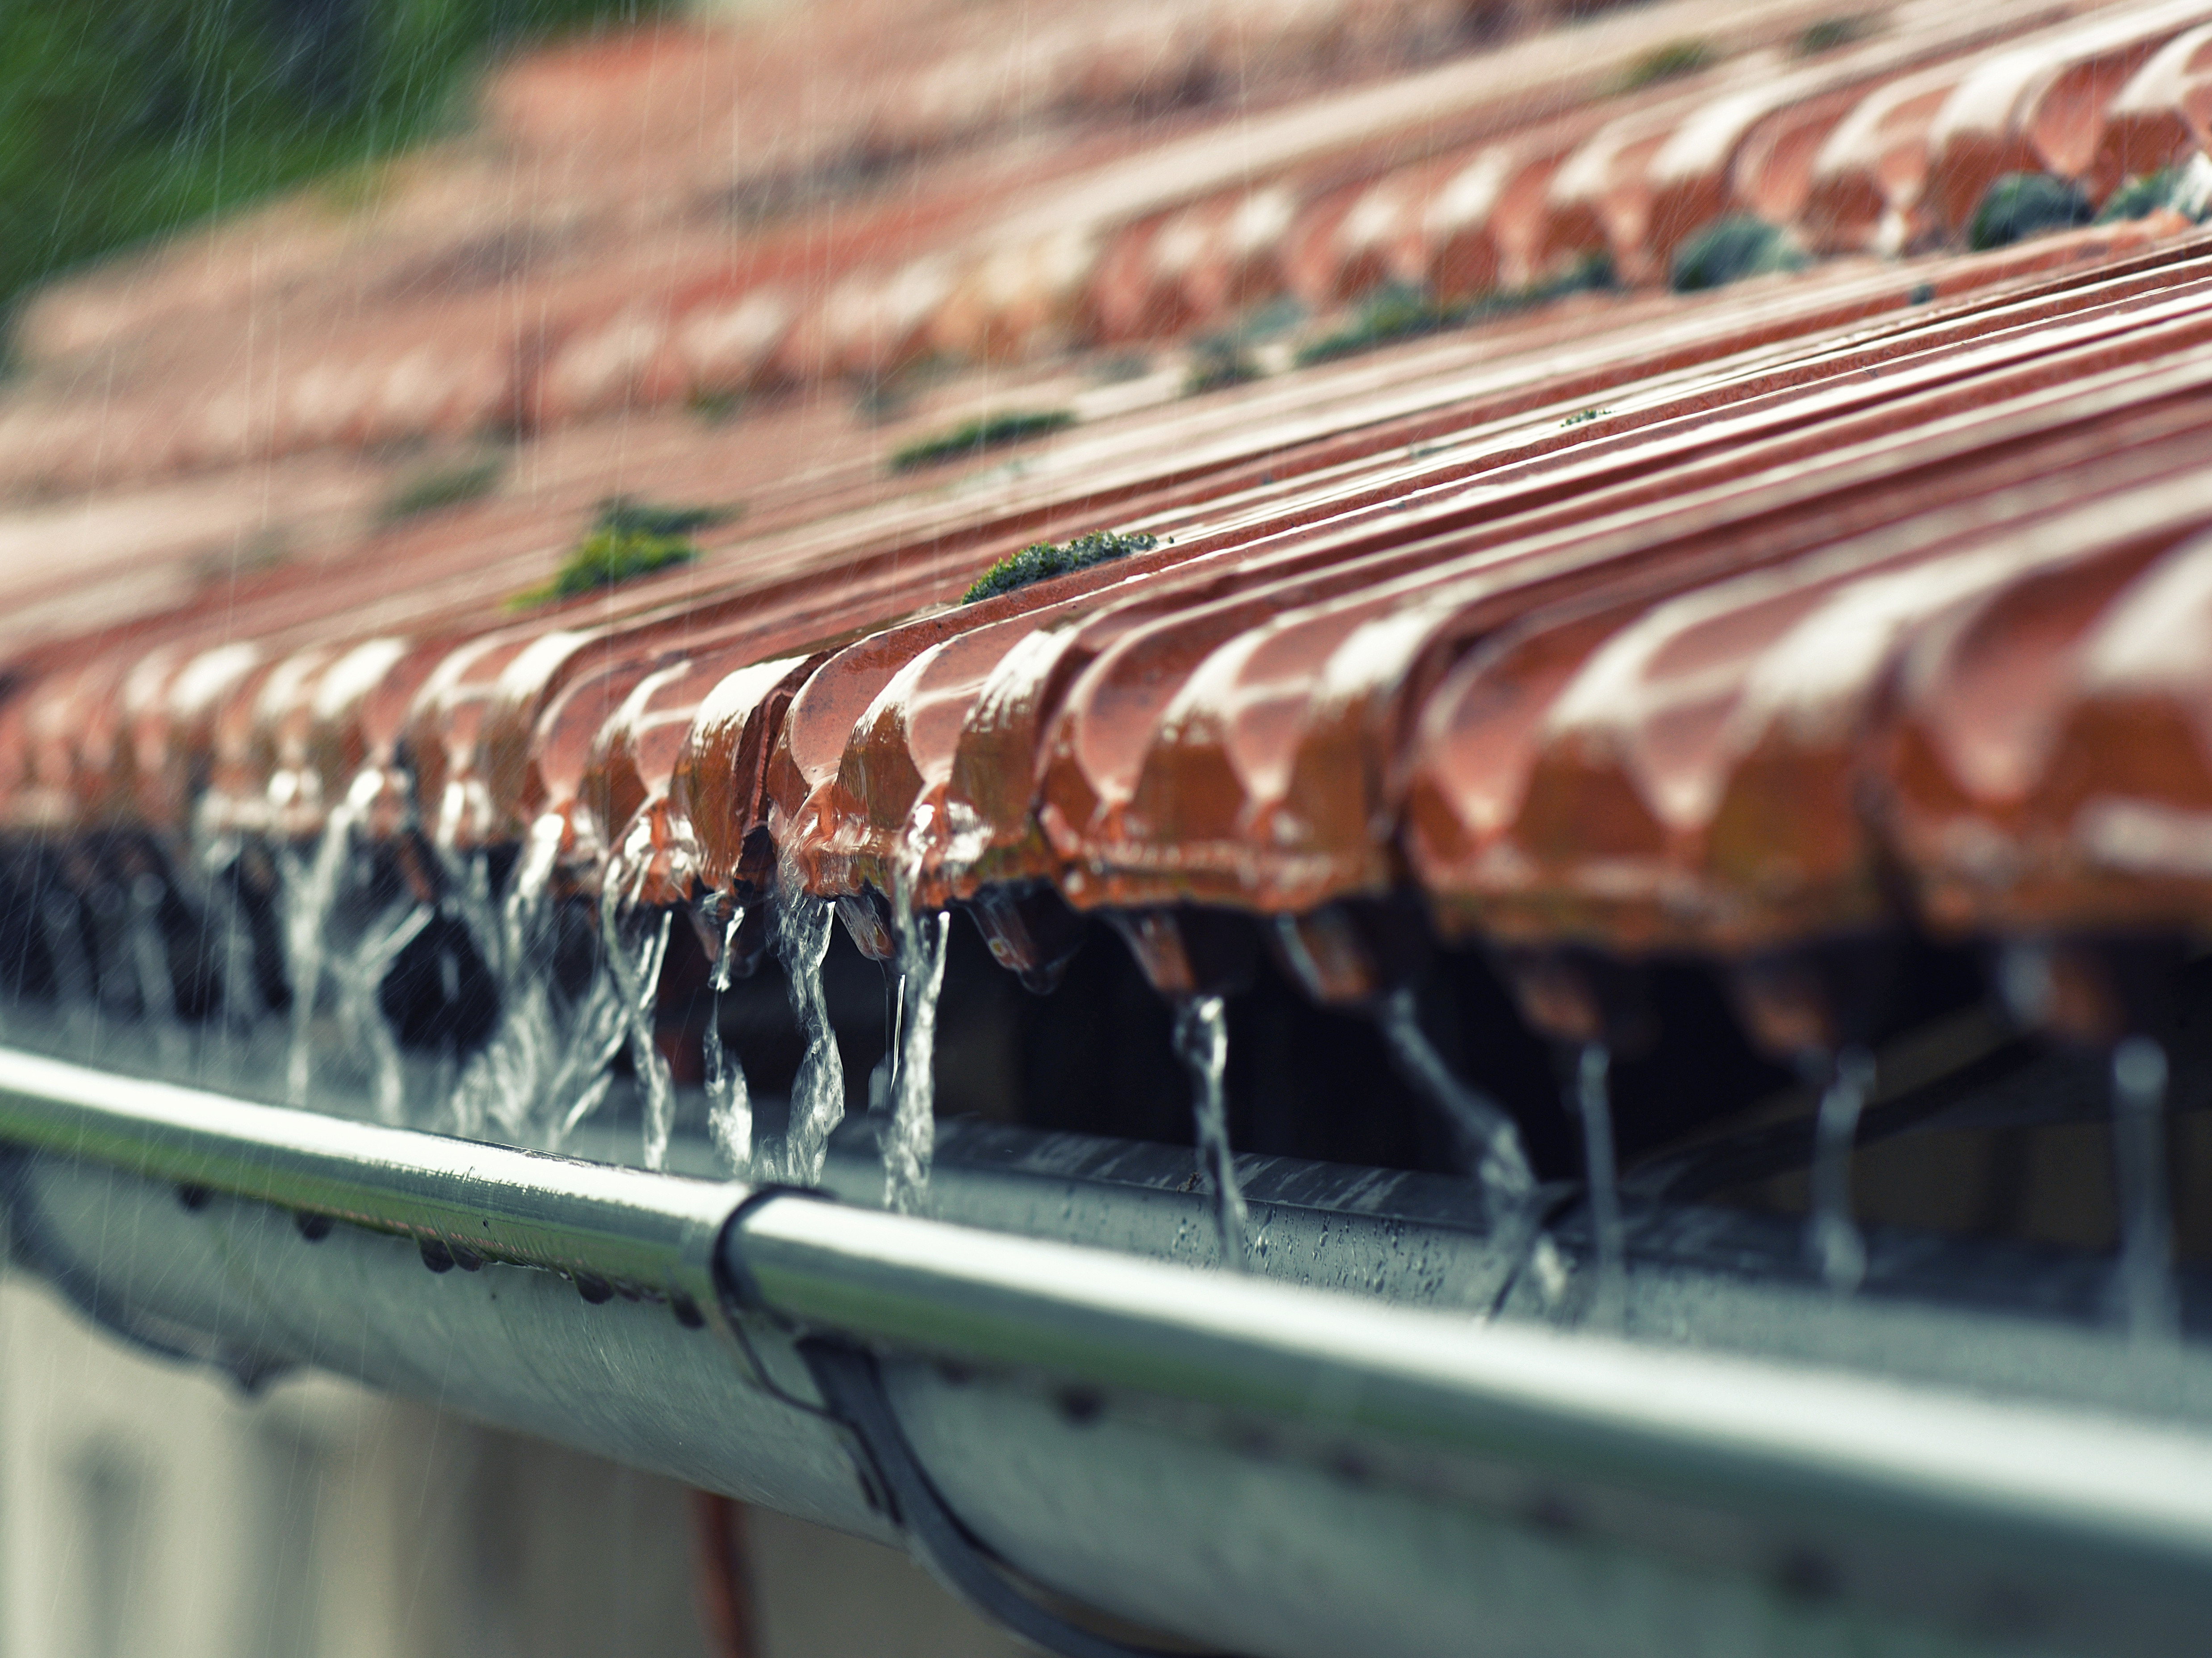 Roof gutter with rain